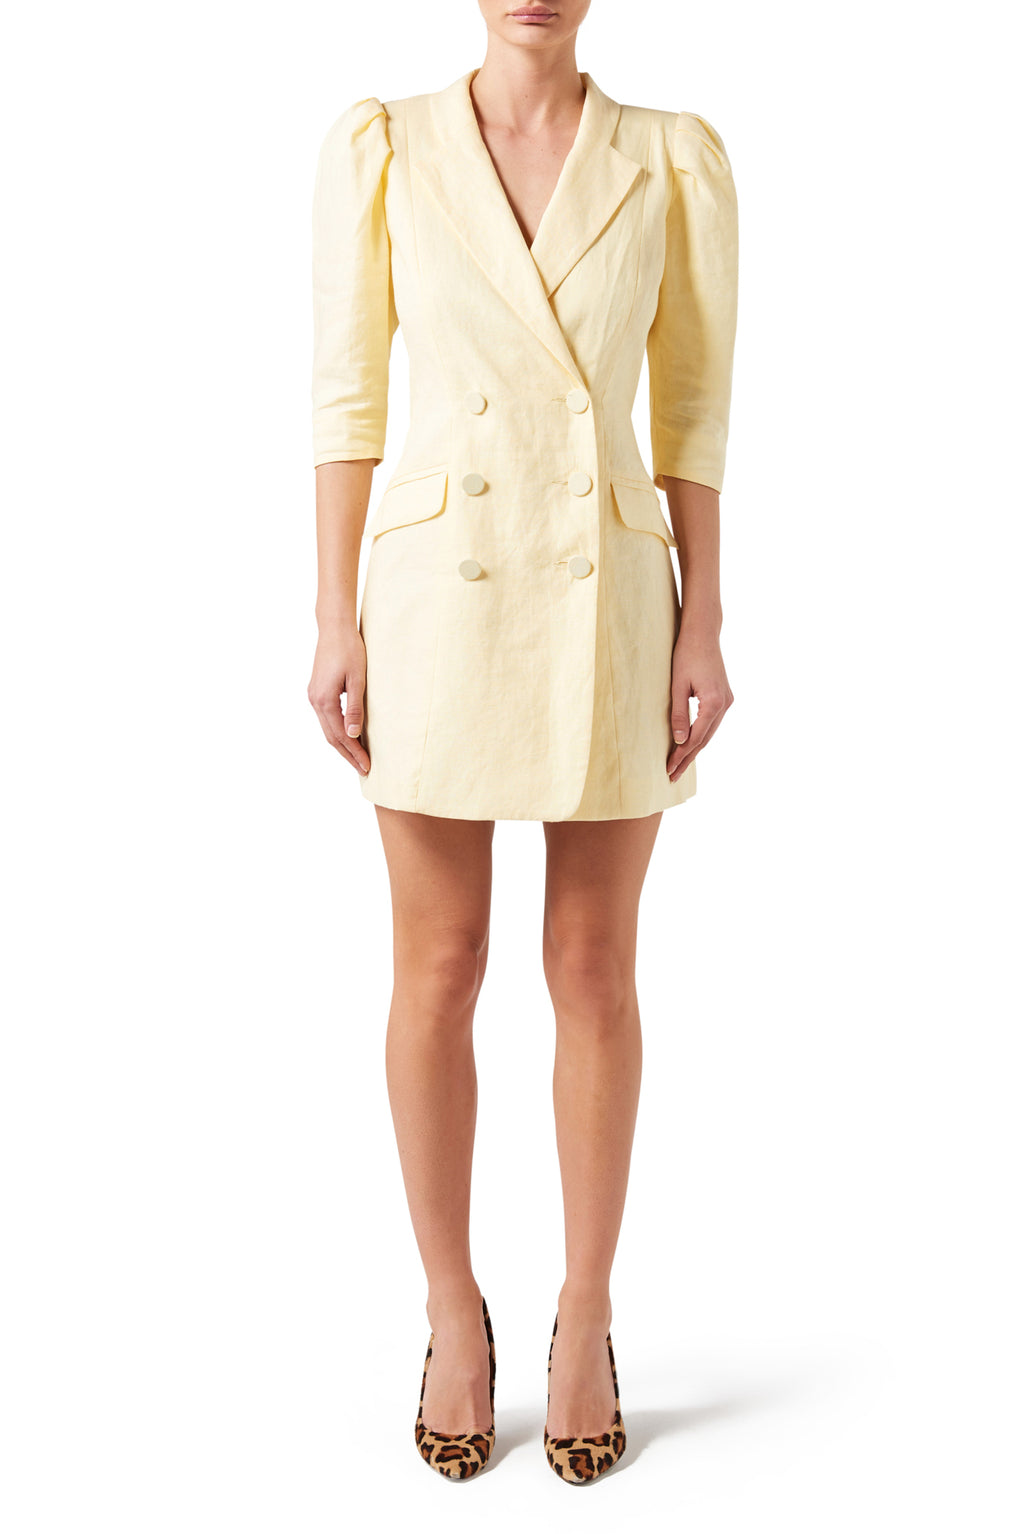 Harlem Jacket Dress - Lemon